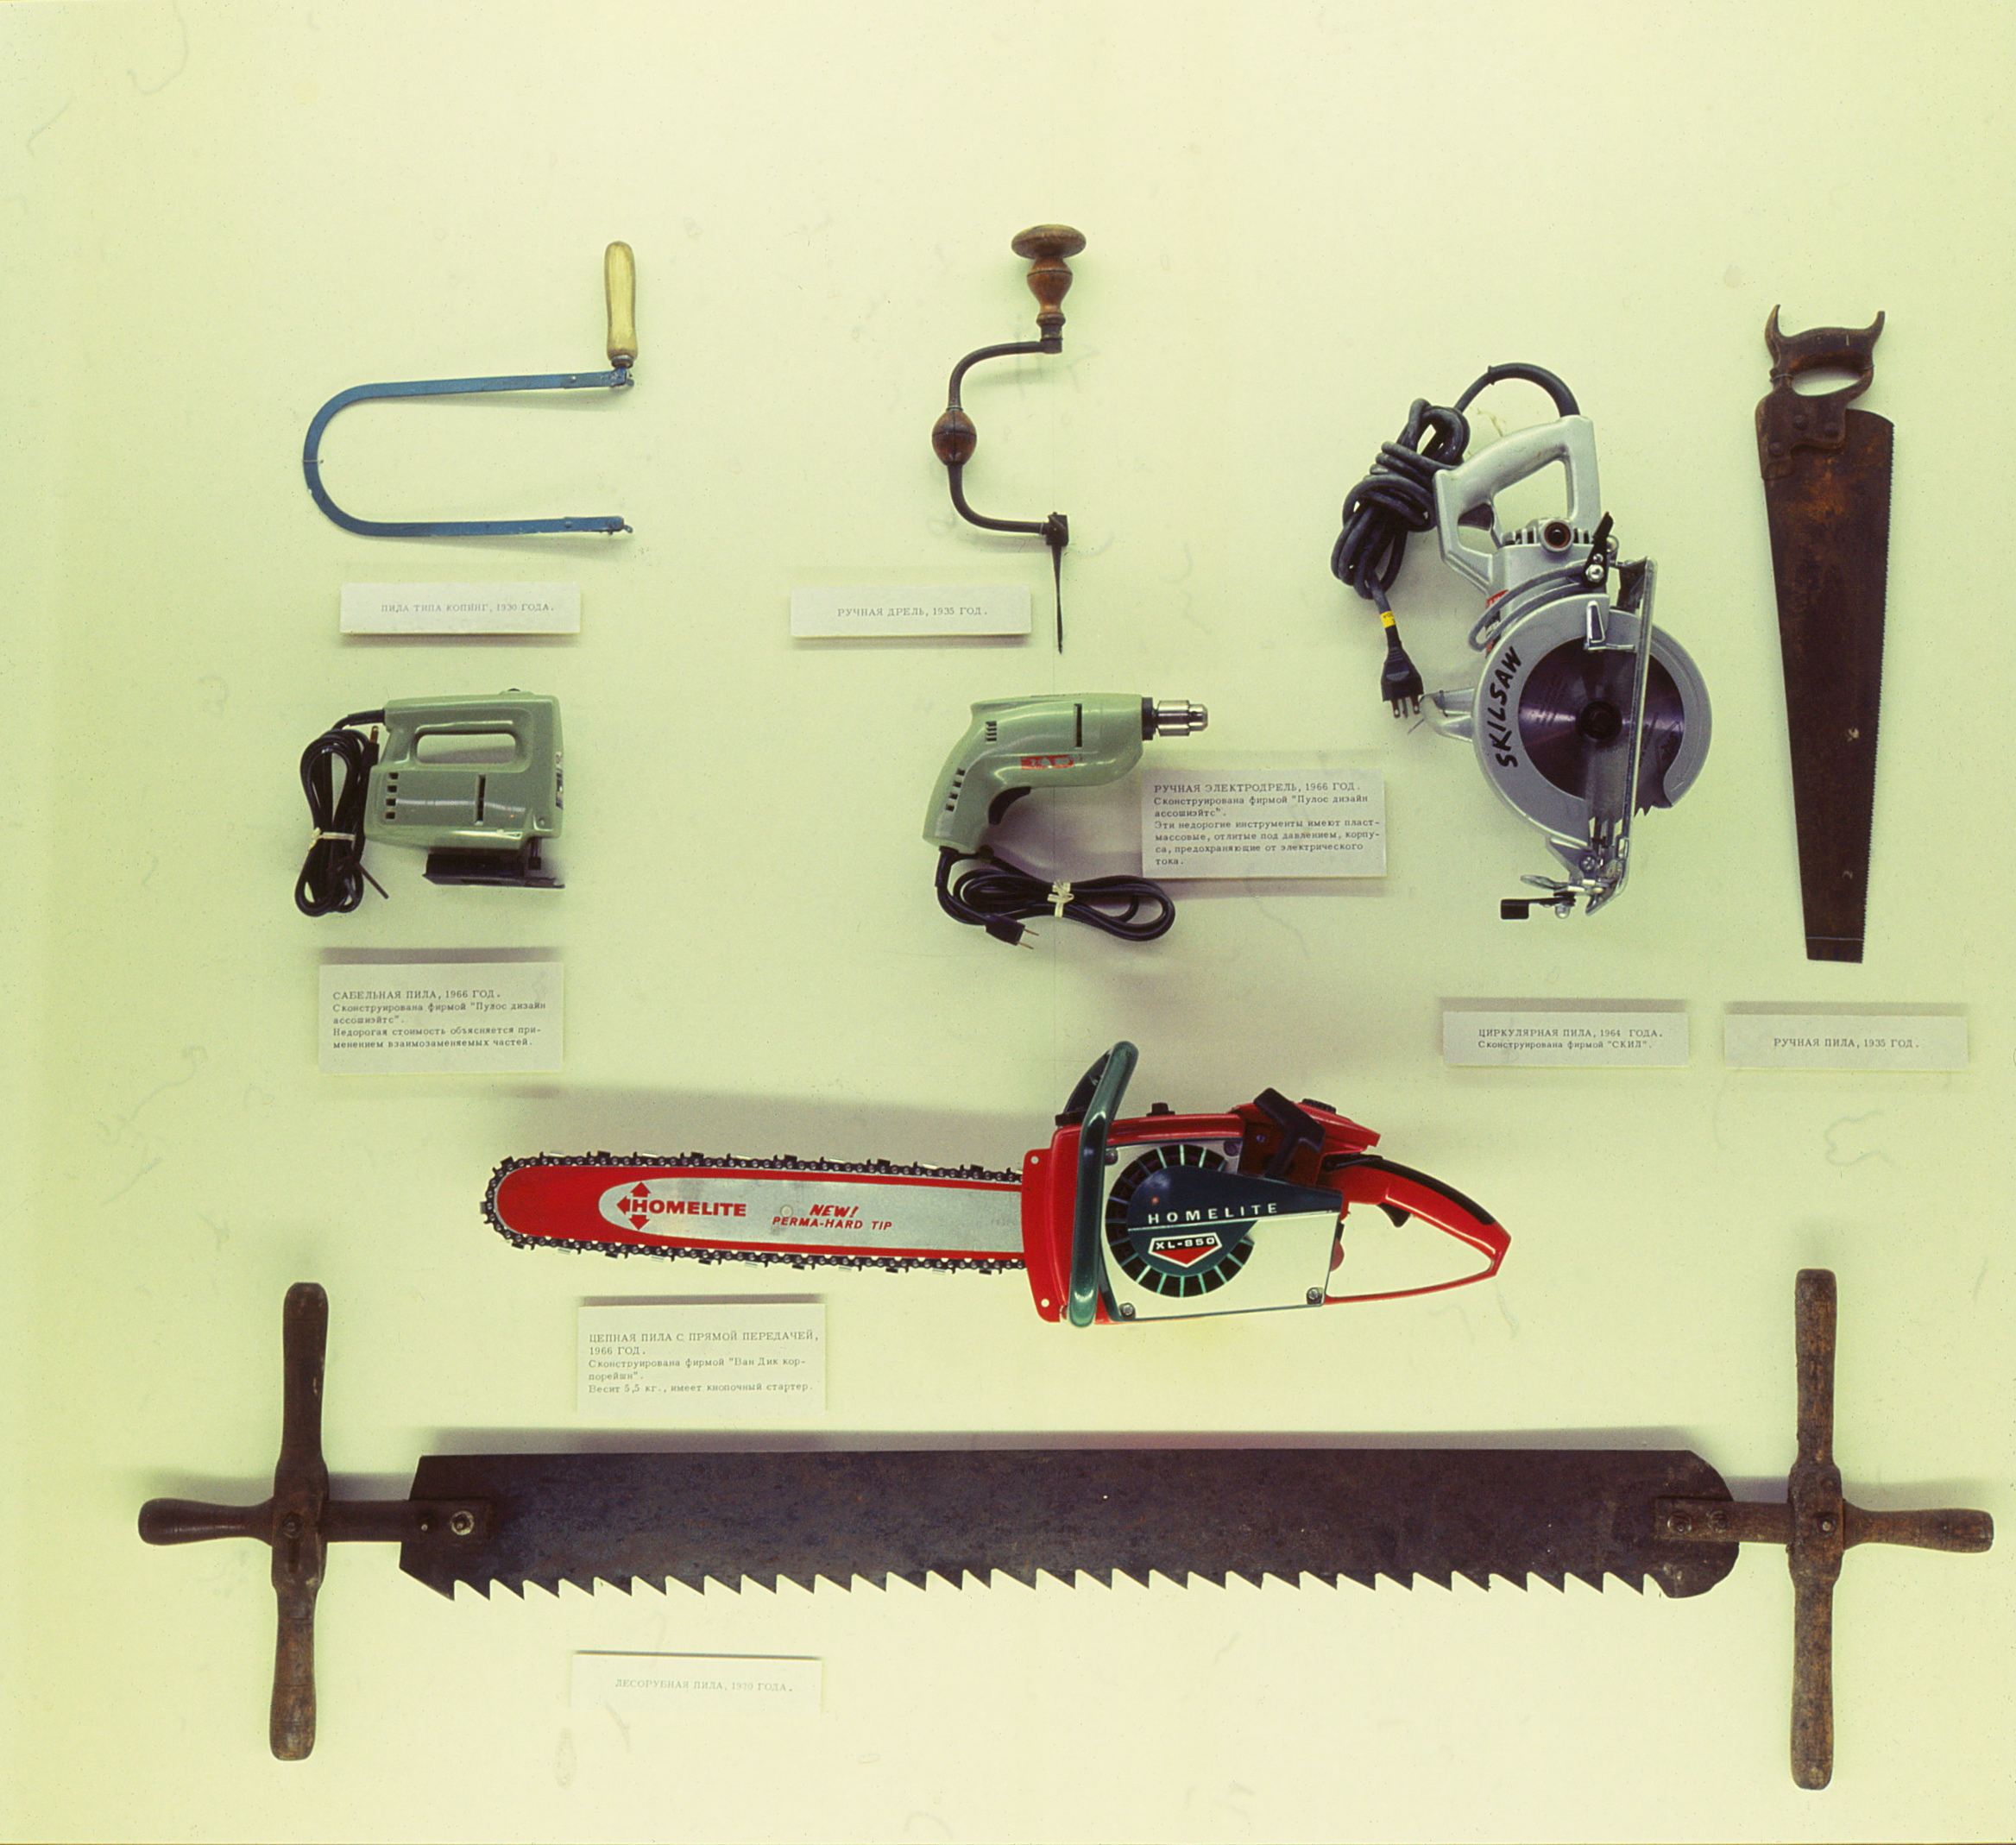 Display case featuring manual and power tools.